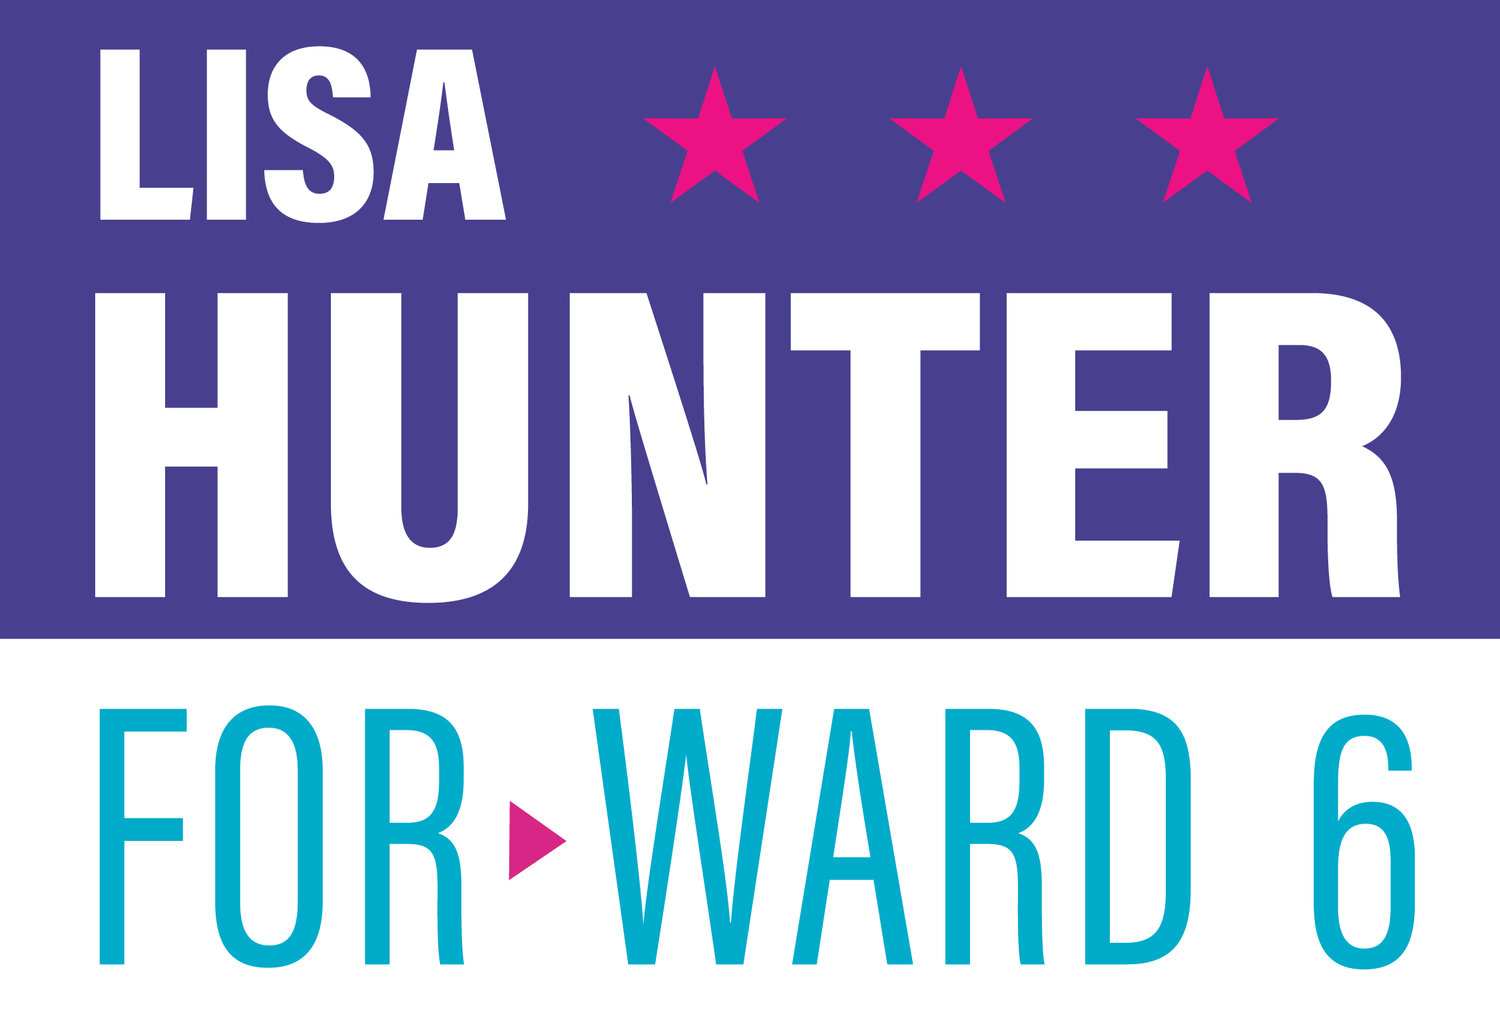 Lisa Hunter for Ward 6